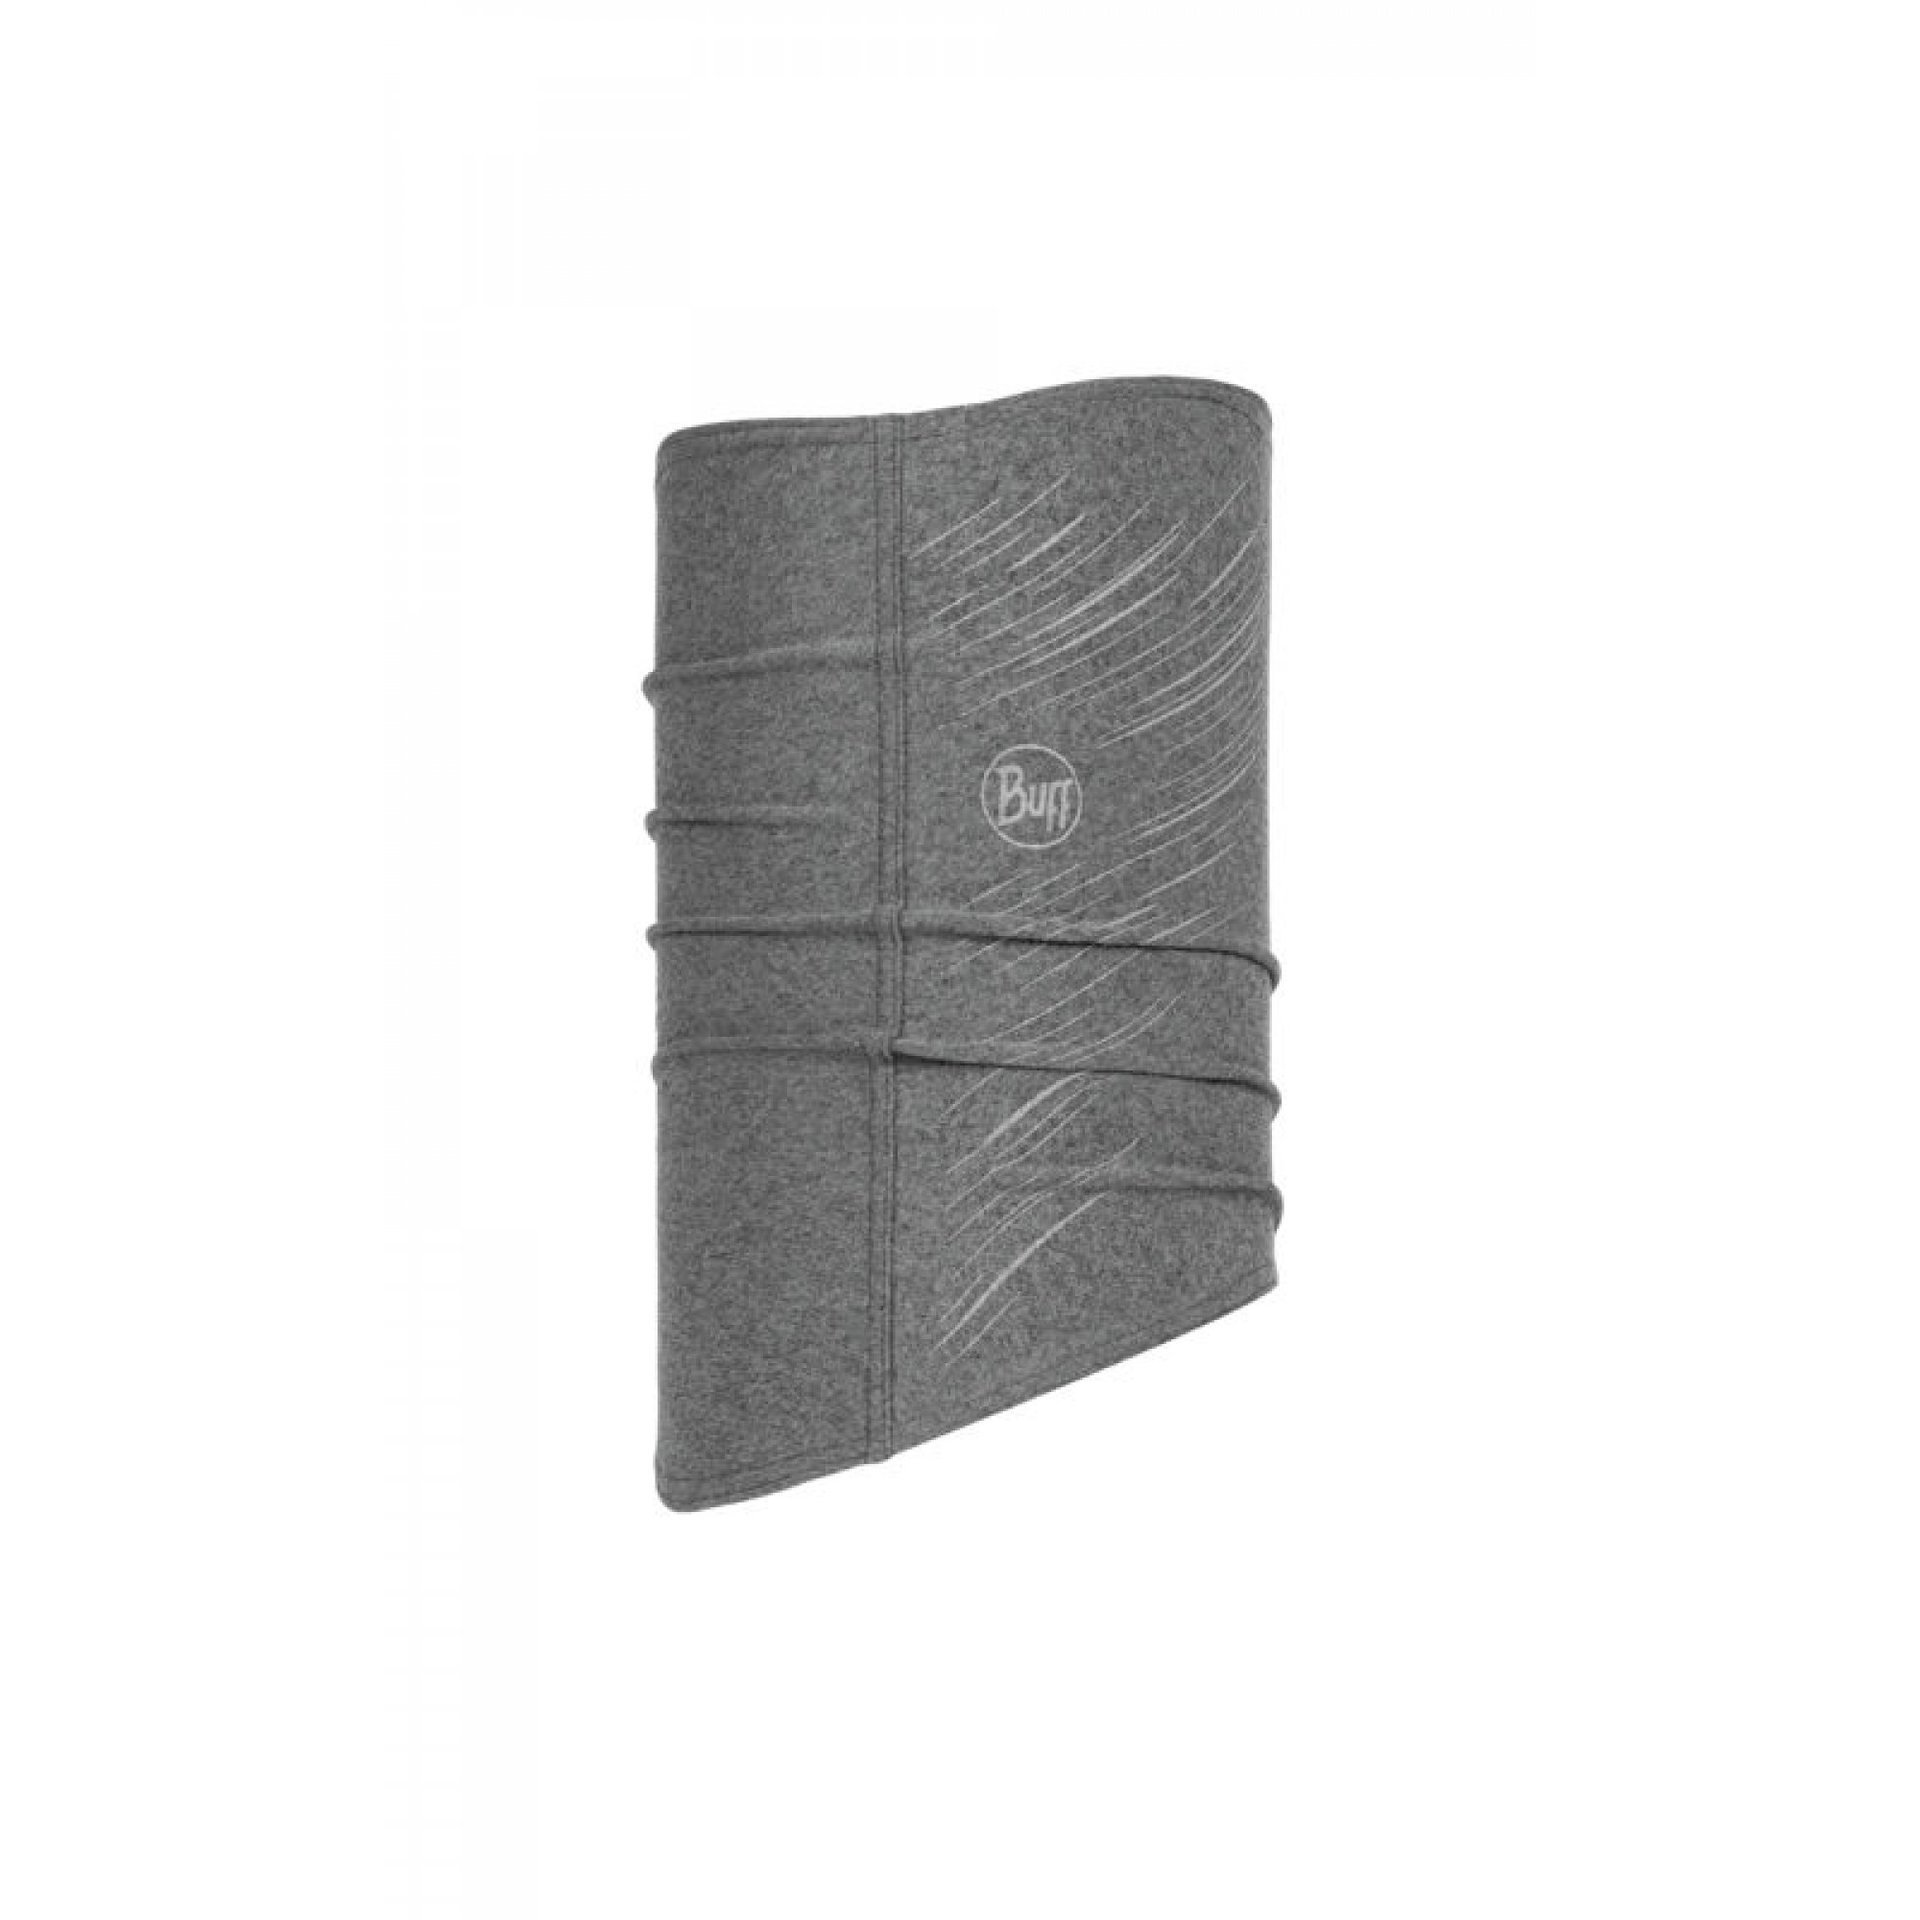 NECKWARMER TECH FLEECE R-GREY BUFF